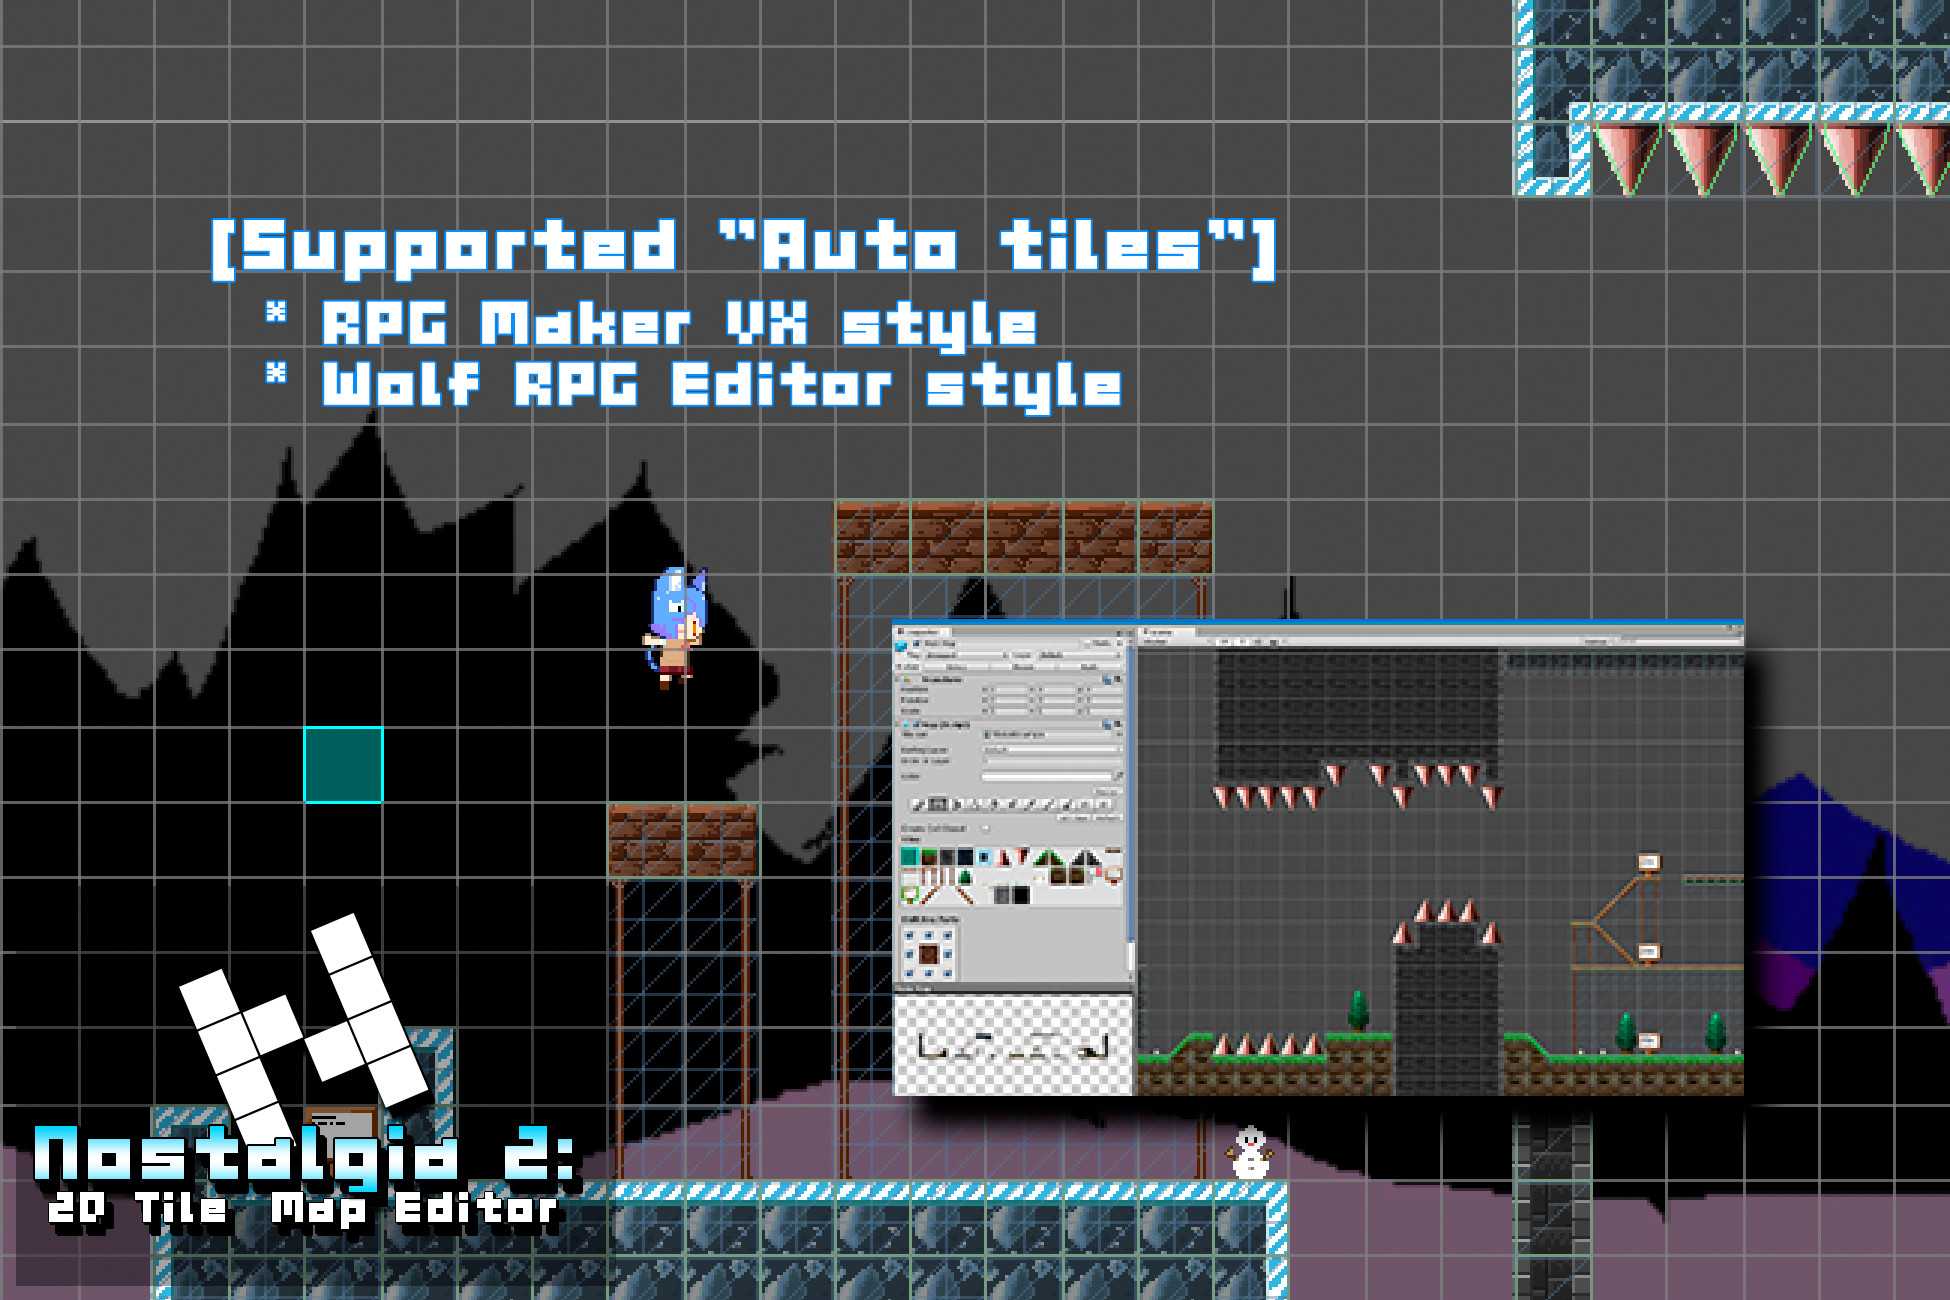 Nostalgia 2: 2D Tile Map Editor